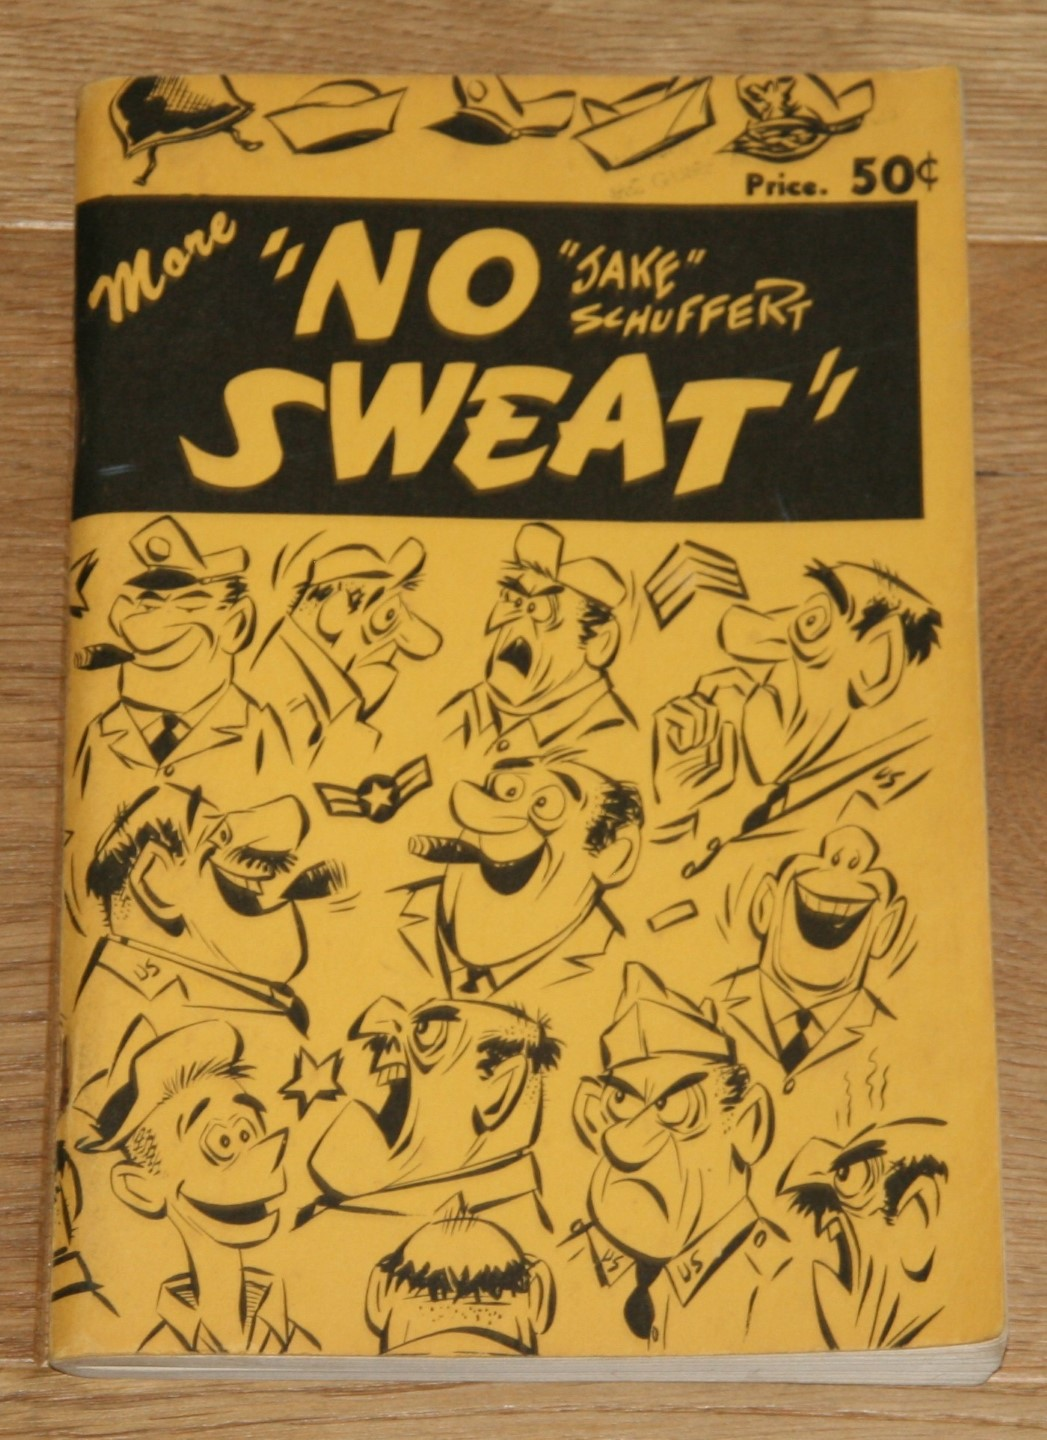 """More No Sweat. [The second collection of """"No Sweat"""" cartoons by Jake Schuffert from the following publications: Army Times, Air Force Times, Navy Times, The American Weekend.],"""